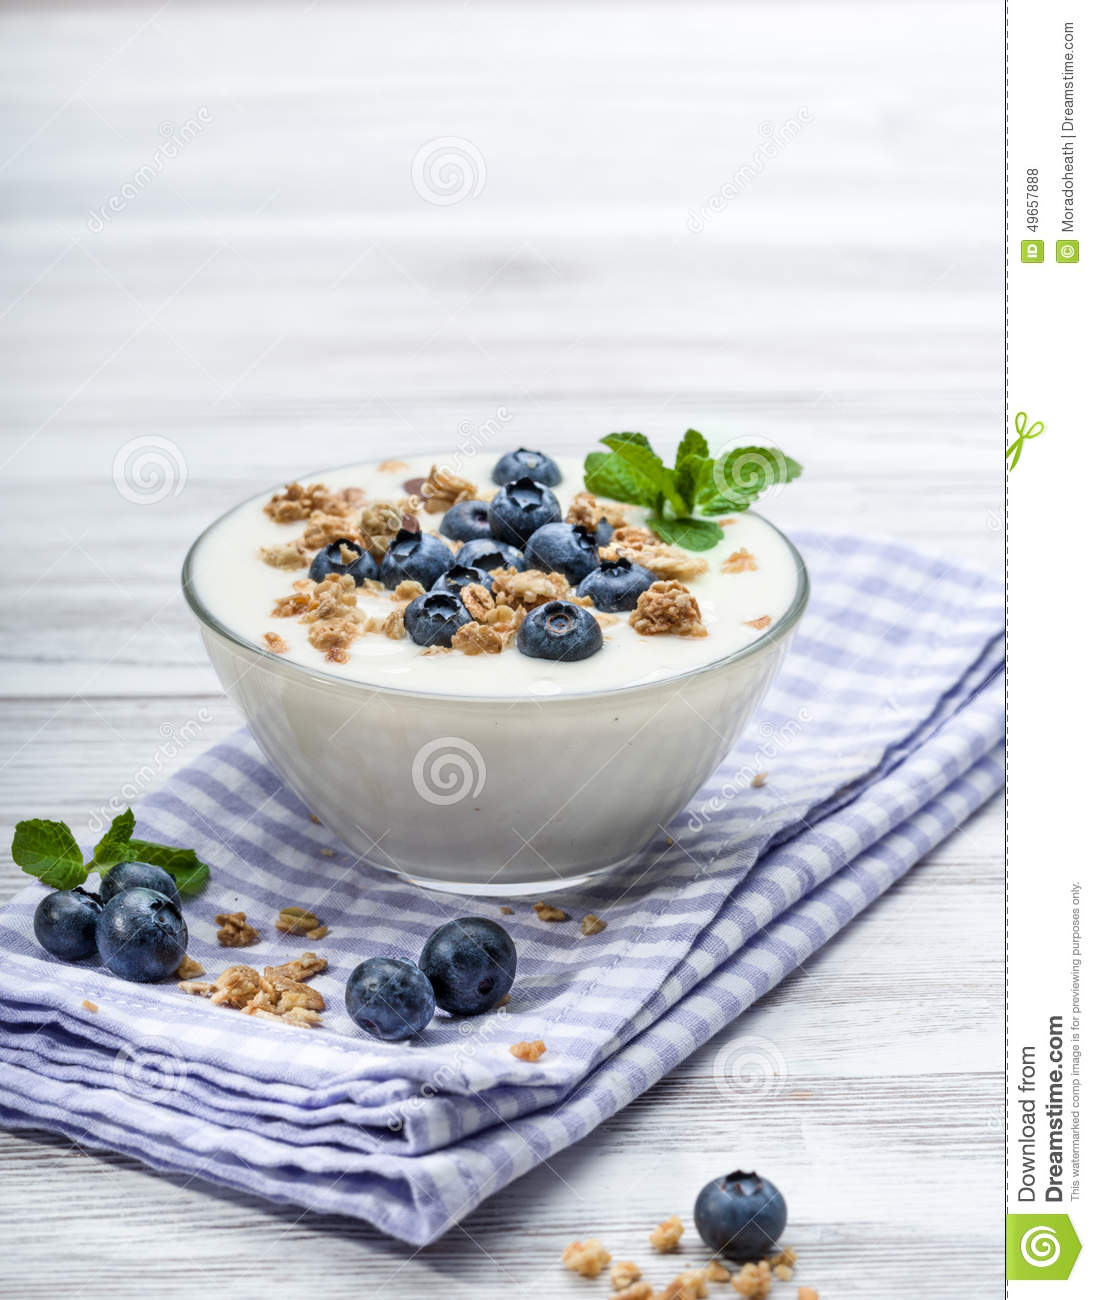 Fresh blueberry yogurt with granola and mint on a background.